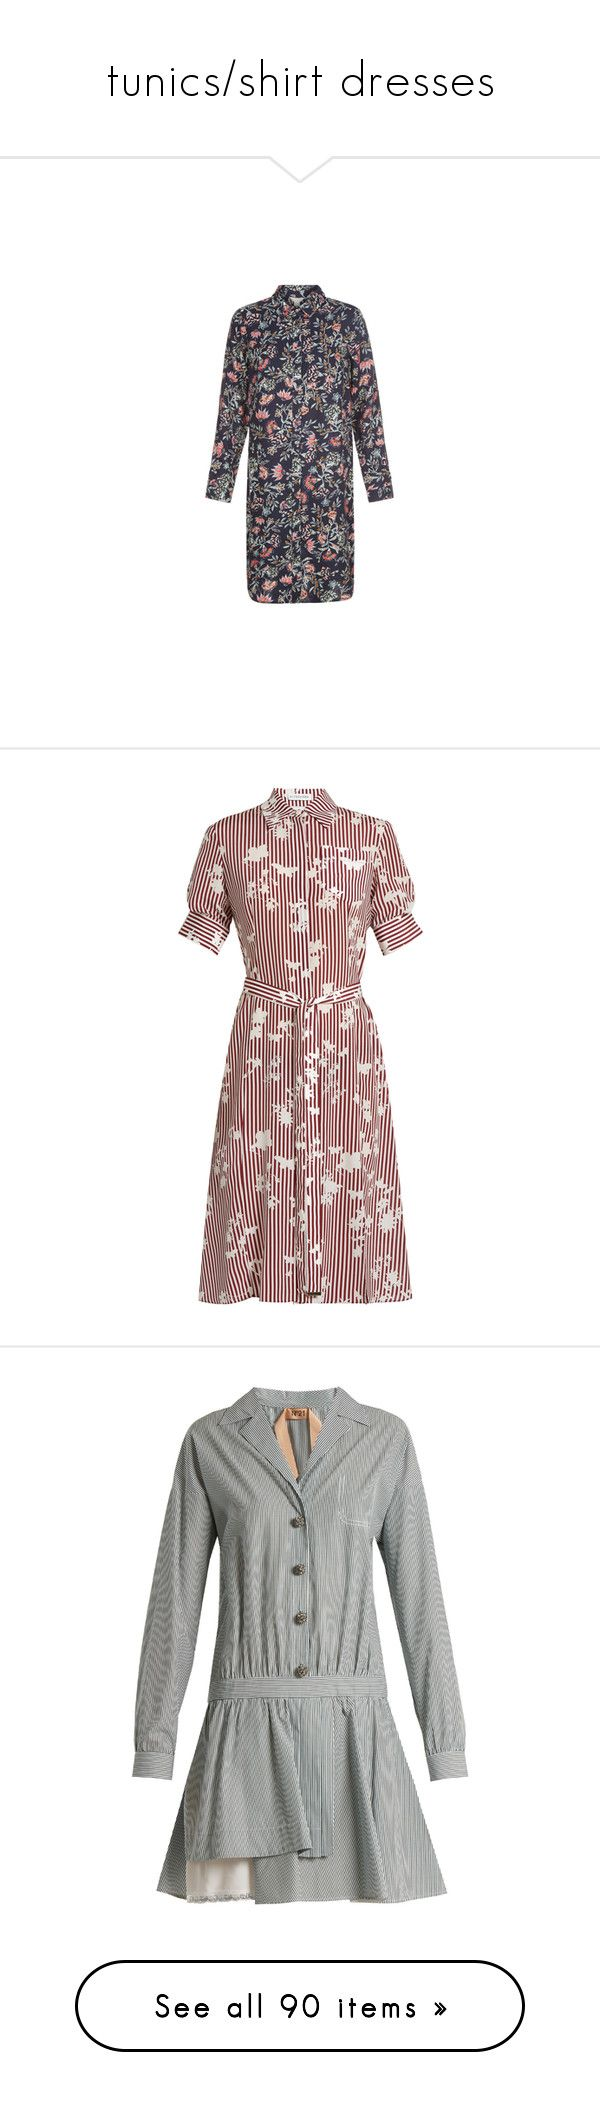 """""""tunics/shirt dresses"""" by stacy-hardy ❤ liked on Polyvore featuring dresses, long sleeve shirt dress, floral shirt dress, floral pattern dress, button shirt dress, long sleeve dress, flared shirt dress, stripe dresses, stripe shirt dress and altuzarra dress"""